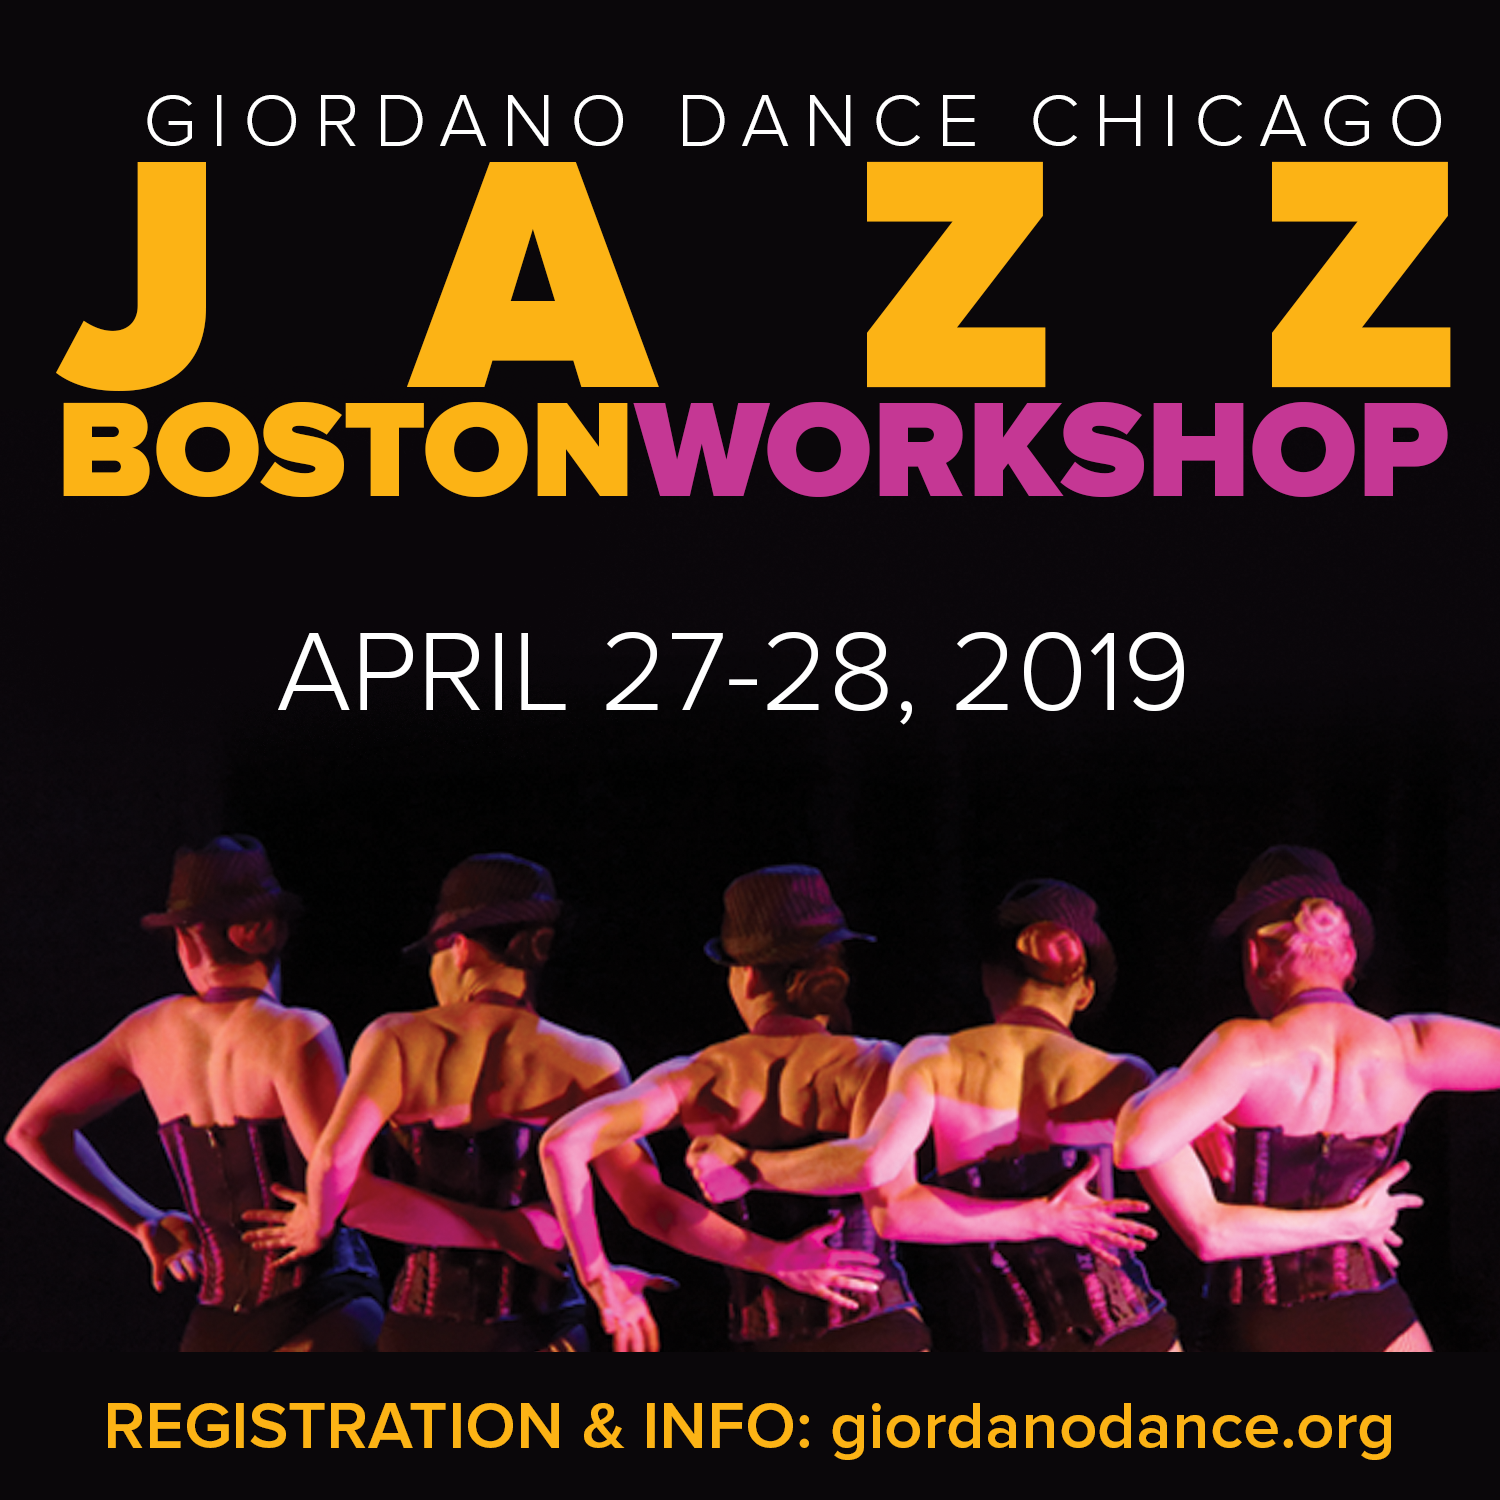 Boston University Dance Program: Giordano Dance Chicago 2 Day Jazz Dance Workshop